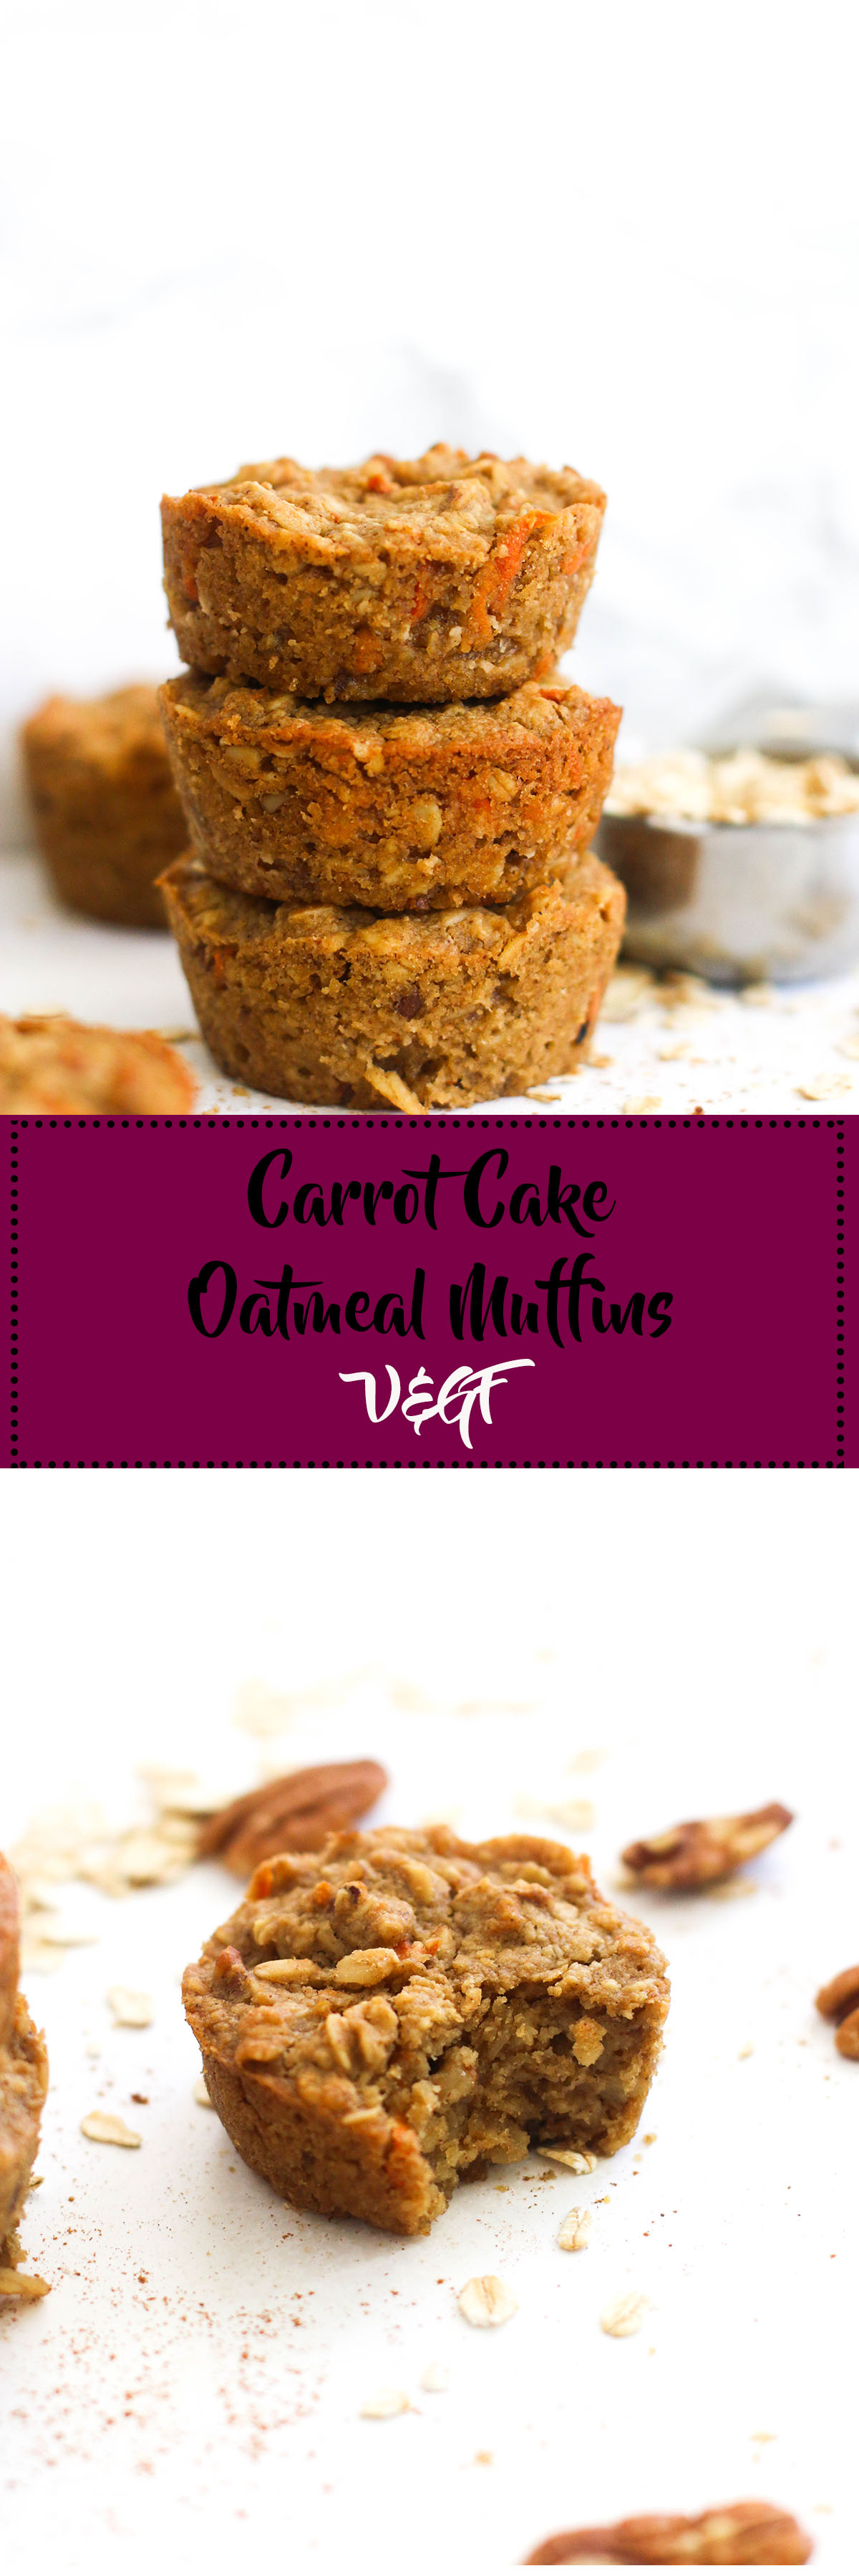 These carrot cake oatmeal muffins are vegan, gluten free, refined sugar free, and a great snack option! They're made with minimal ingredients, come together in under an hour, and are full of flavor.